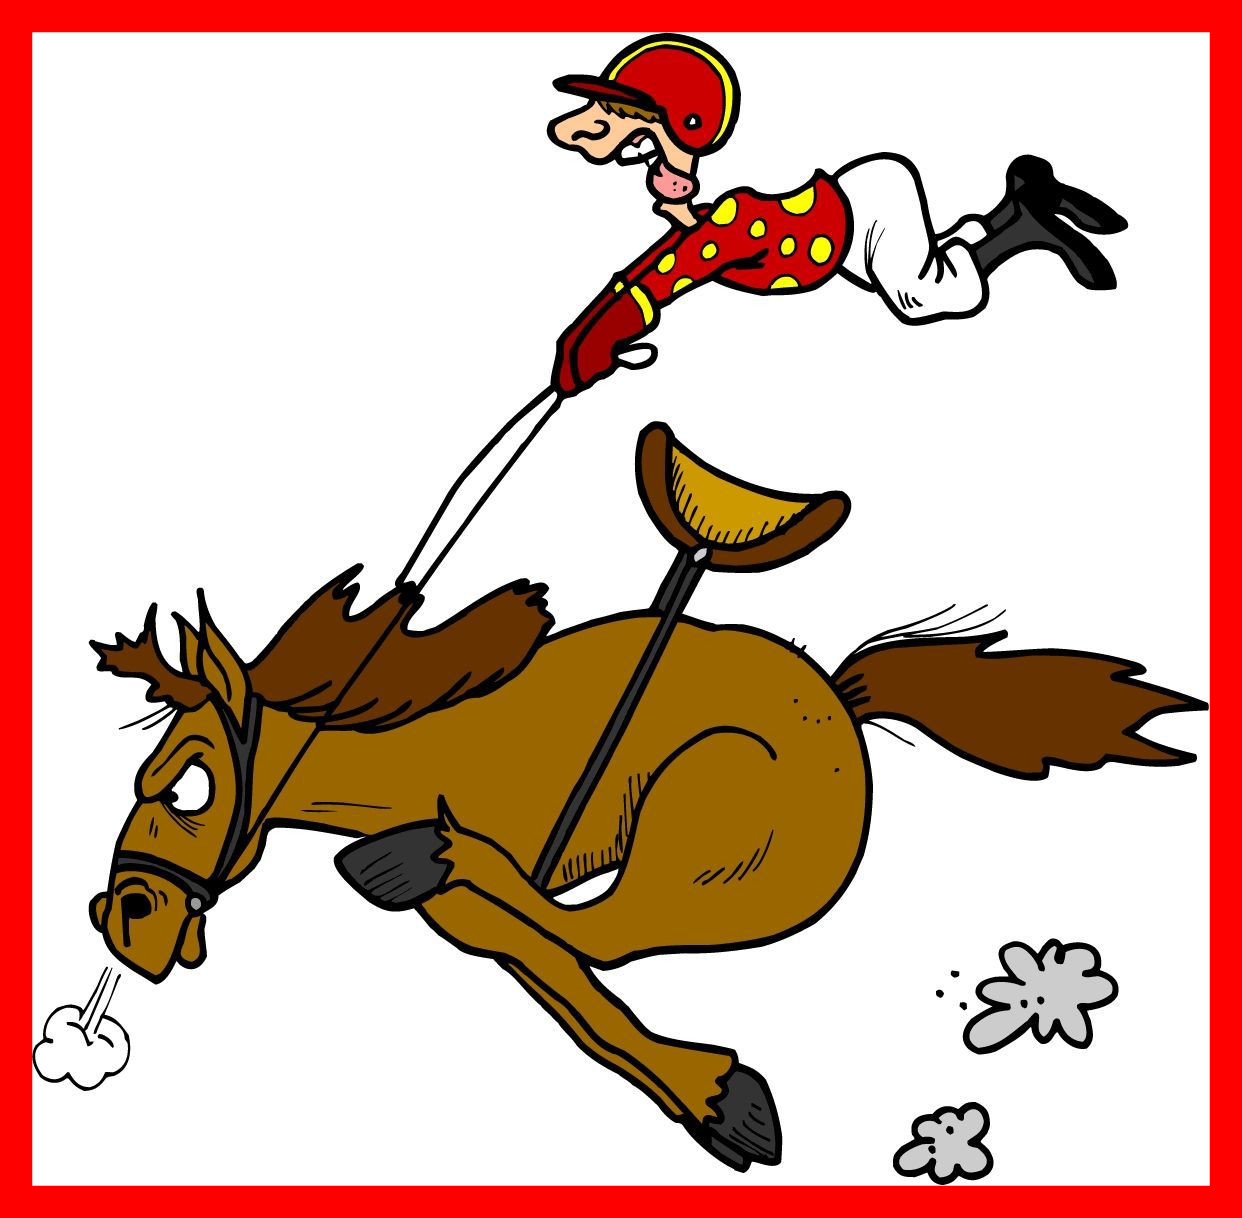 horse racing clipart at getdrawings com free for personal use rh getdrawings com horse racing clipart horse racing clipart in ai free